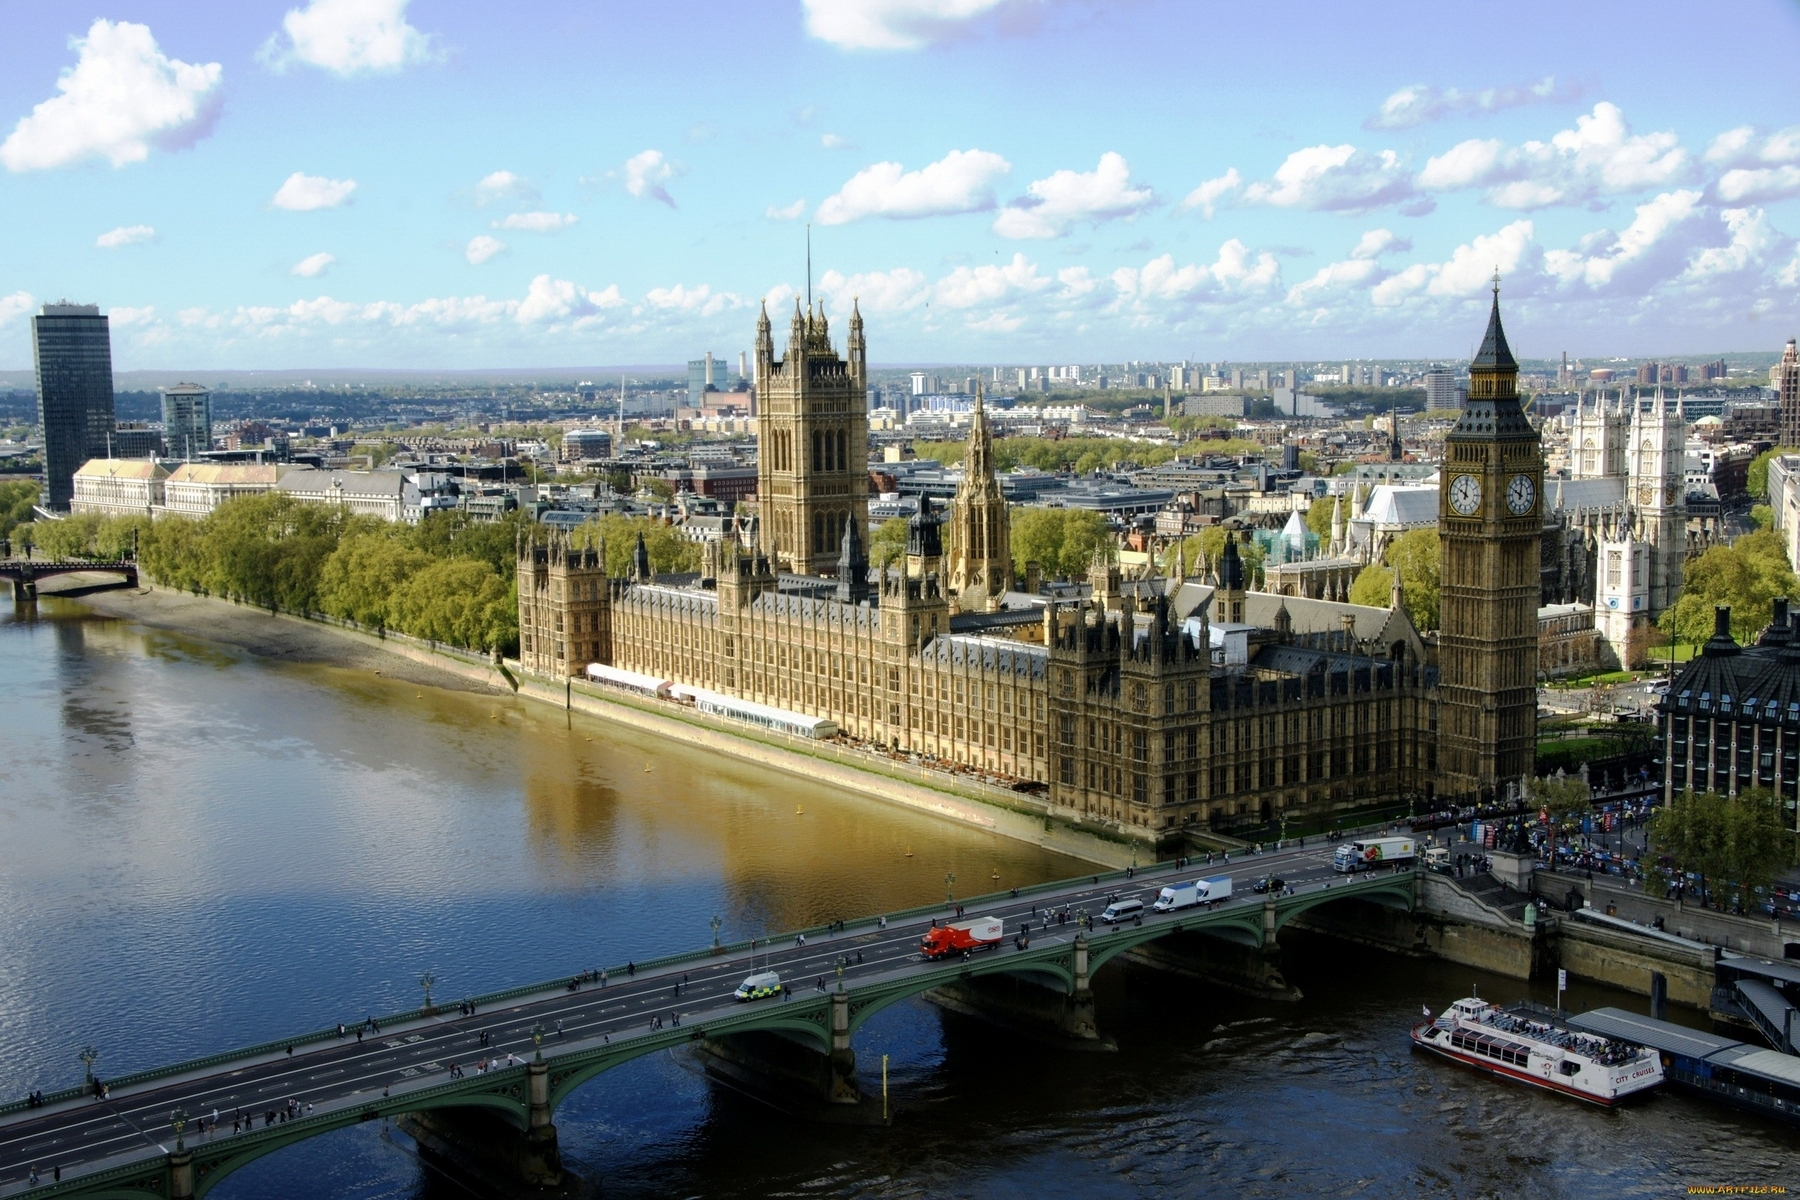 42806 download wallpaper Landscape, Cities, London, Big Ben screensavers and pictures for free